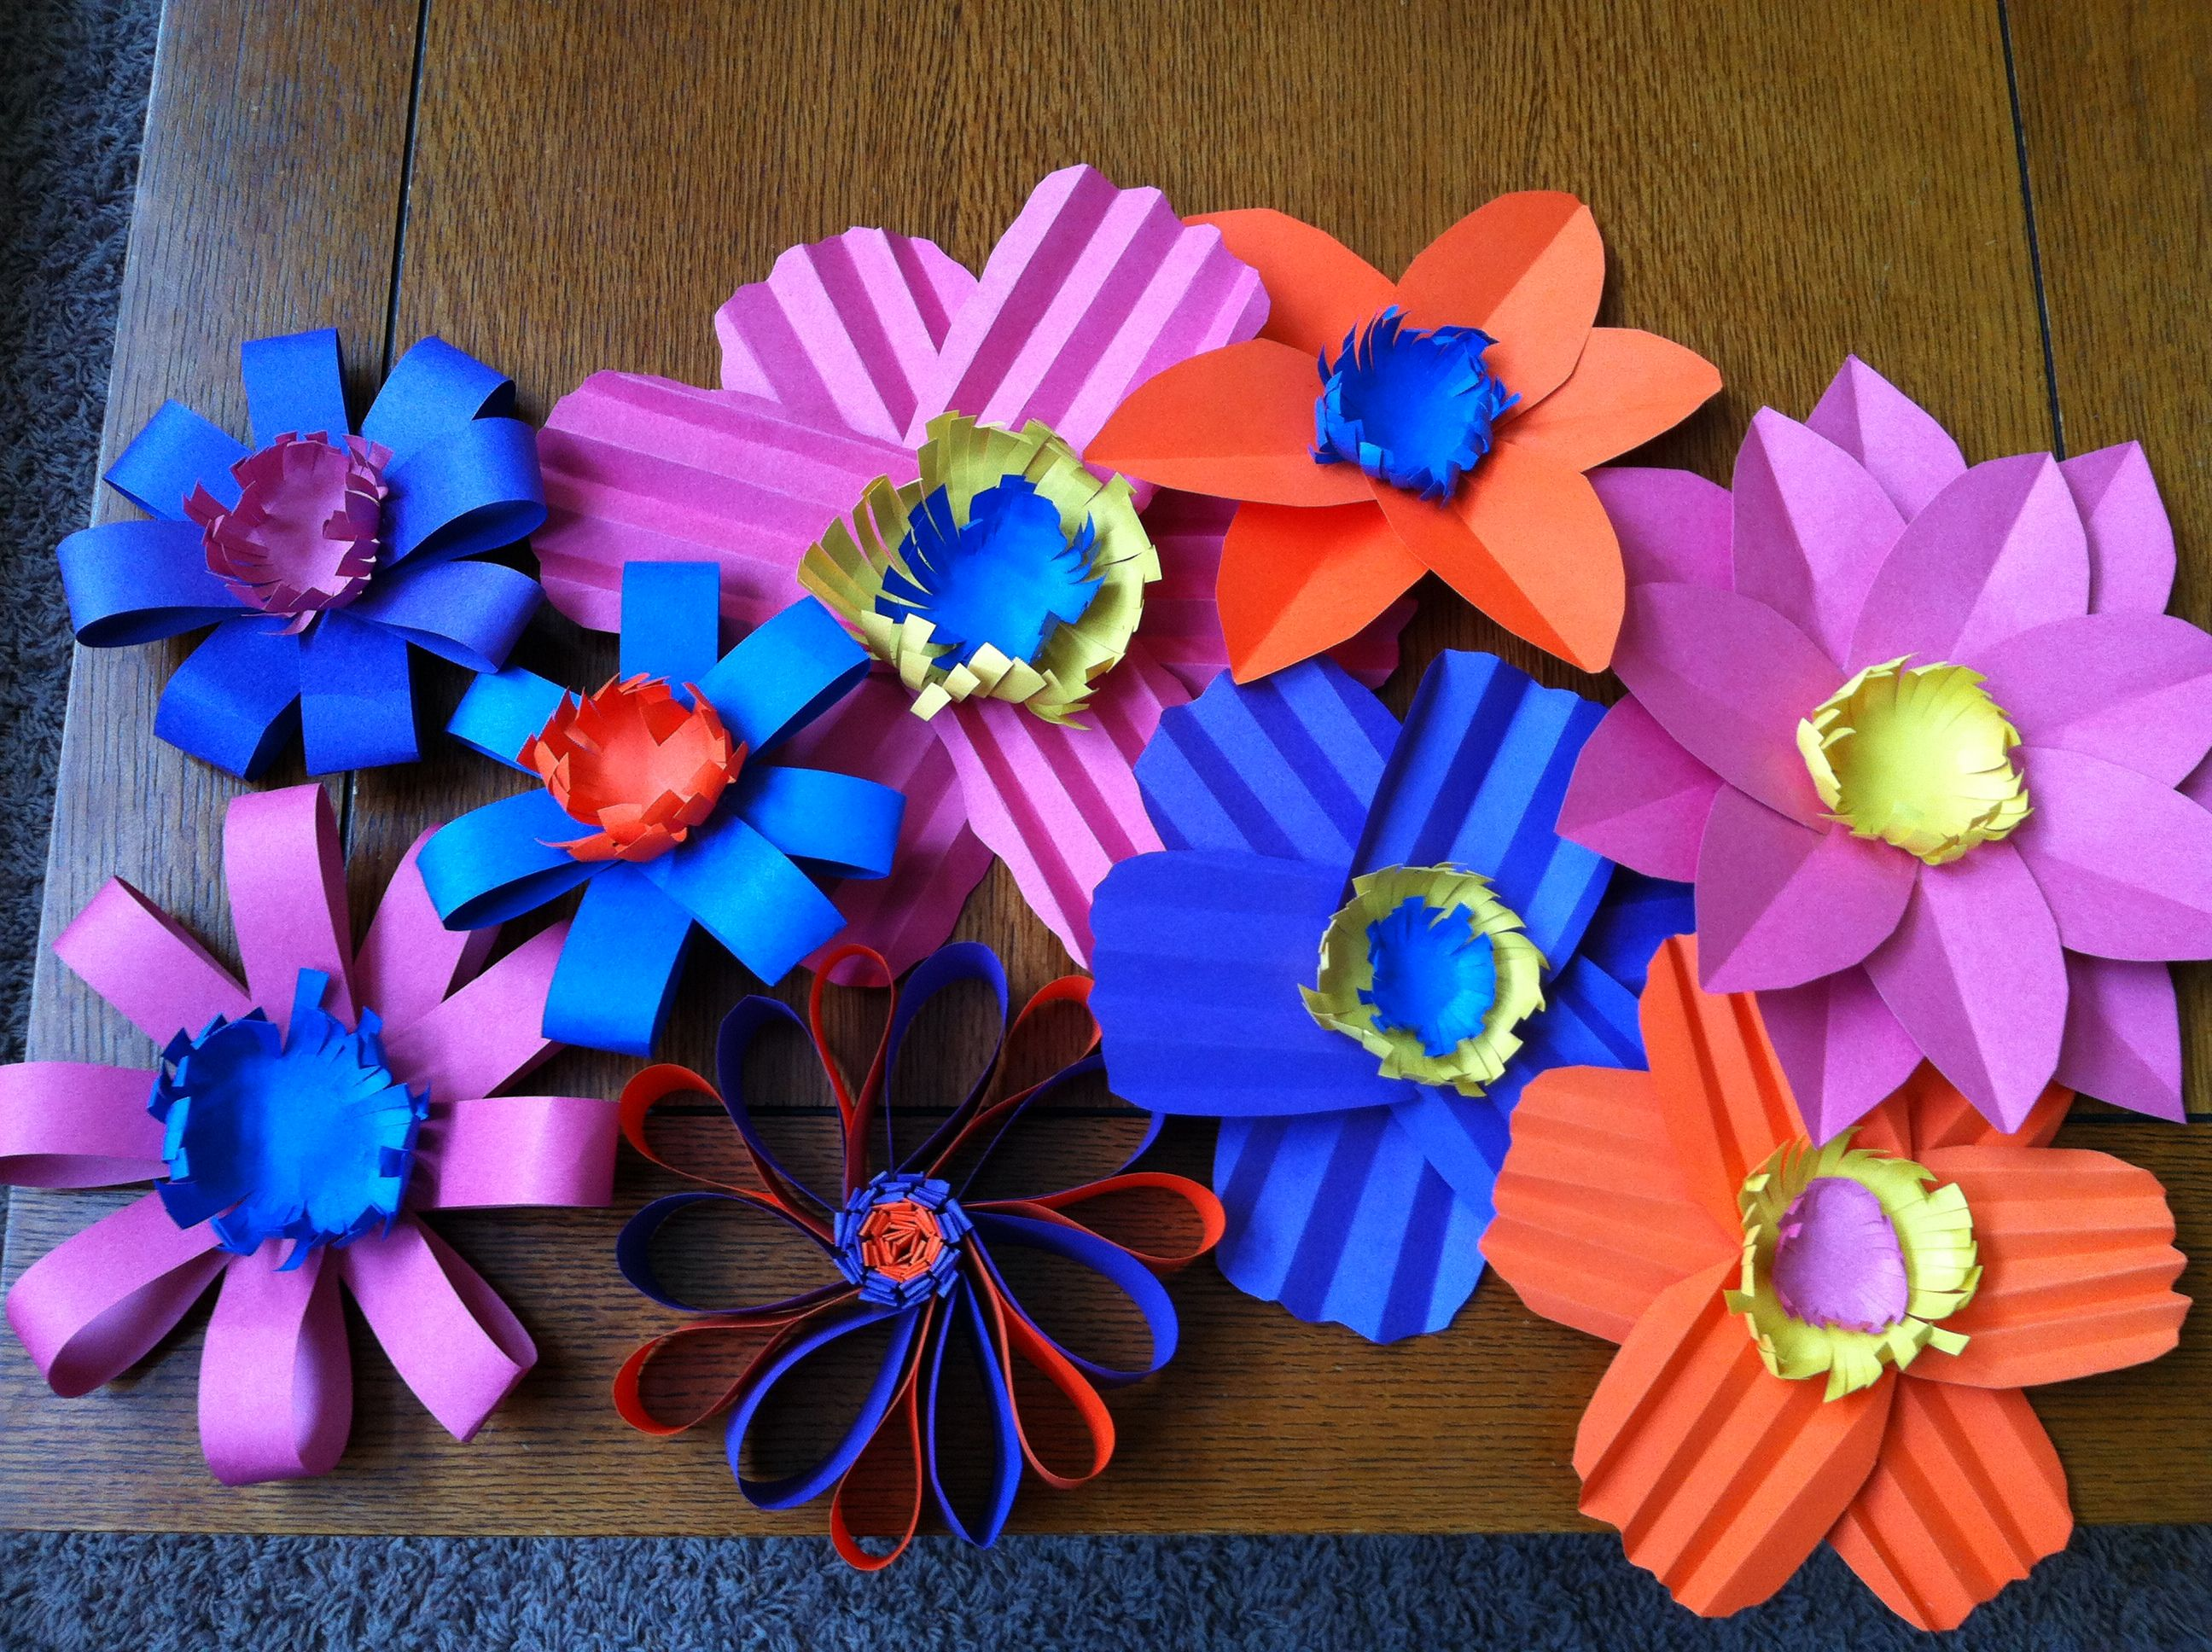 Construction paper flowers made for the spring library bulletin construction paper flowers made for the spring library bulletin board at school mightylinksfo